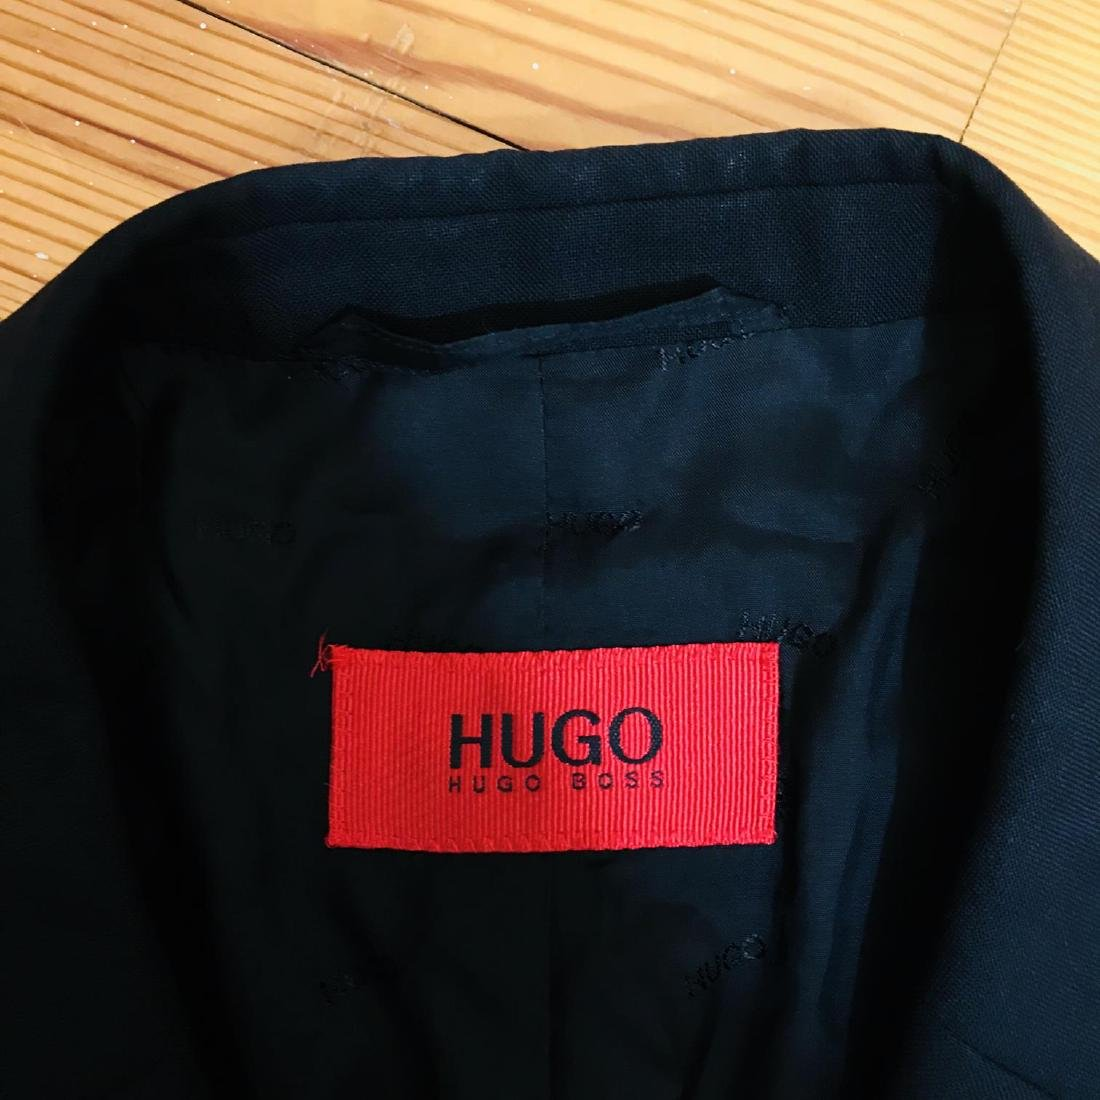 Men's HUGO BOSS Blazer Jacket Size US 42 EUR 52 - 6